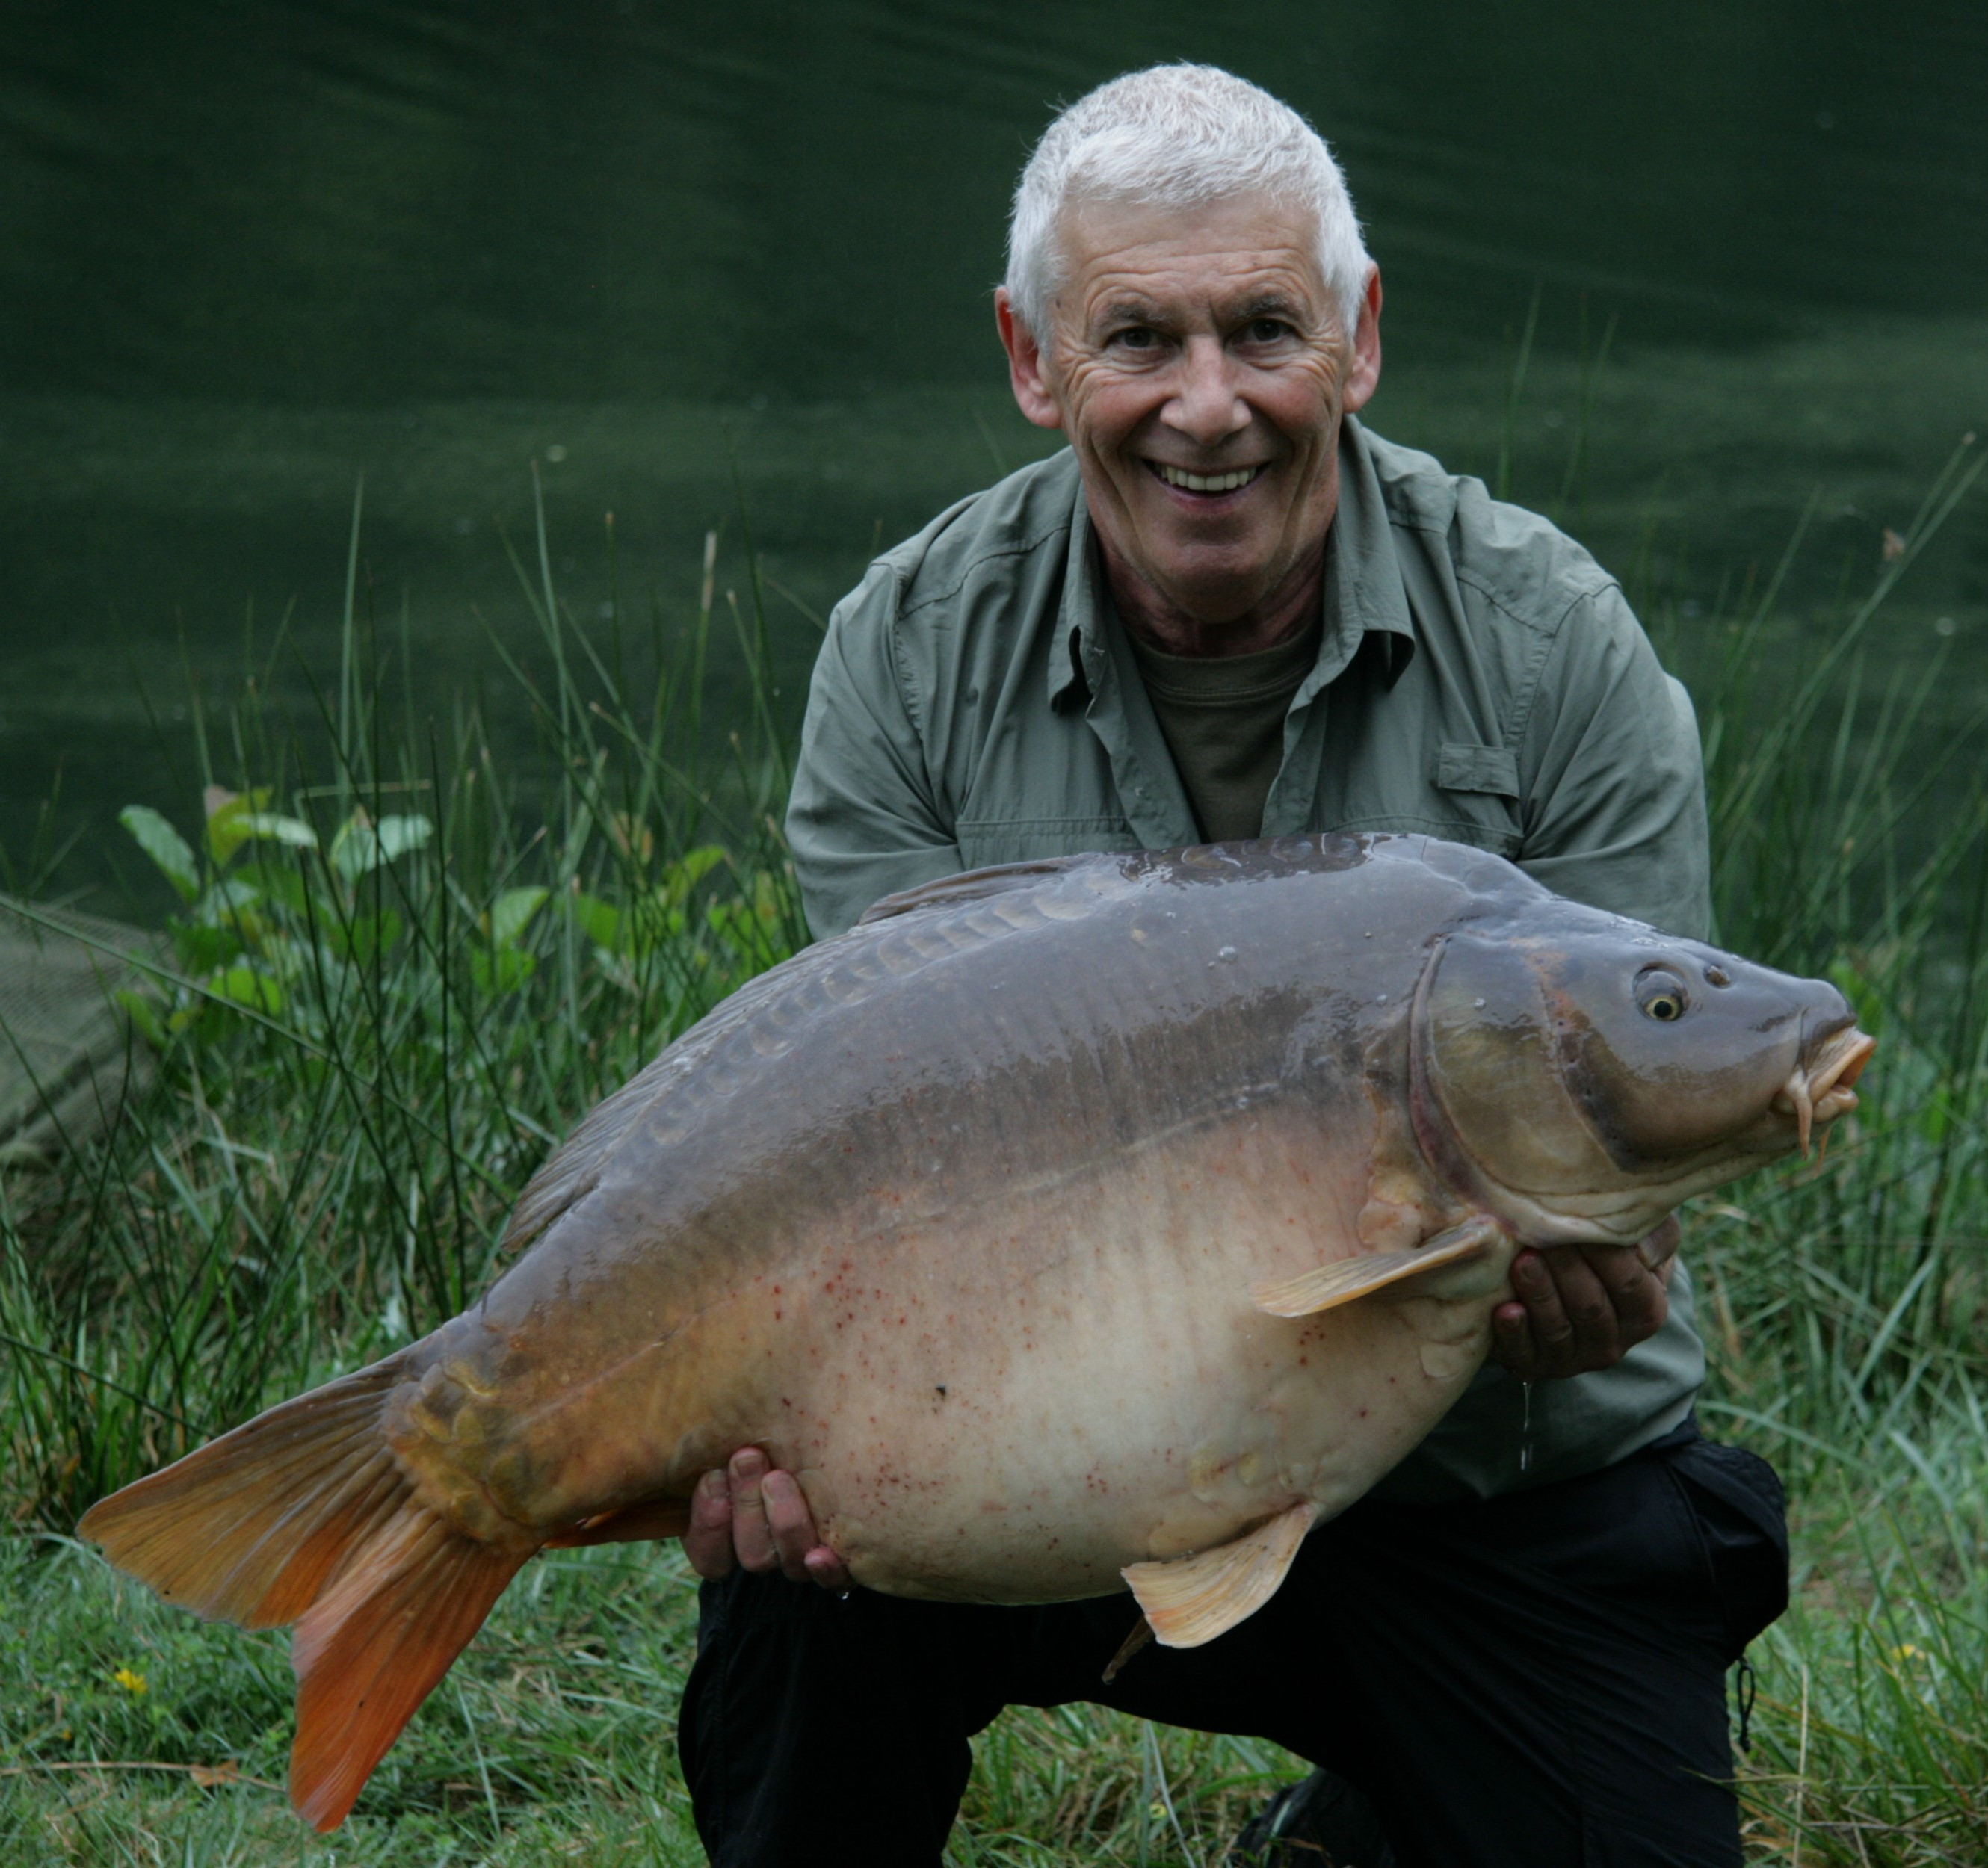 https://www.puyravaudcarp.com/wp-content/uploads/2016/10/40.12.jpg